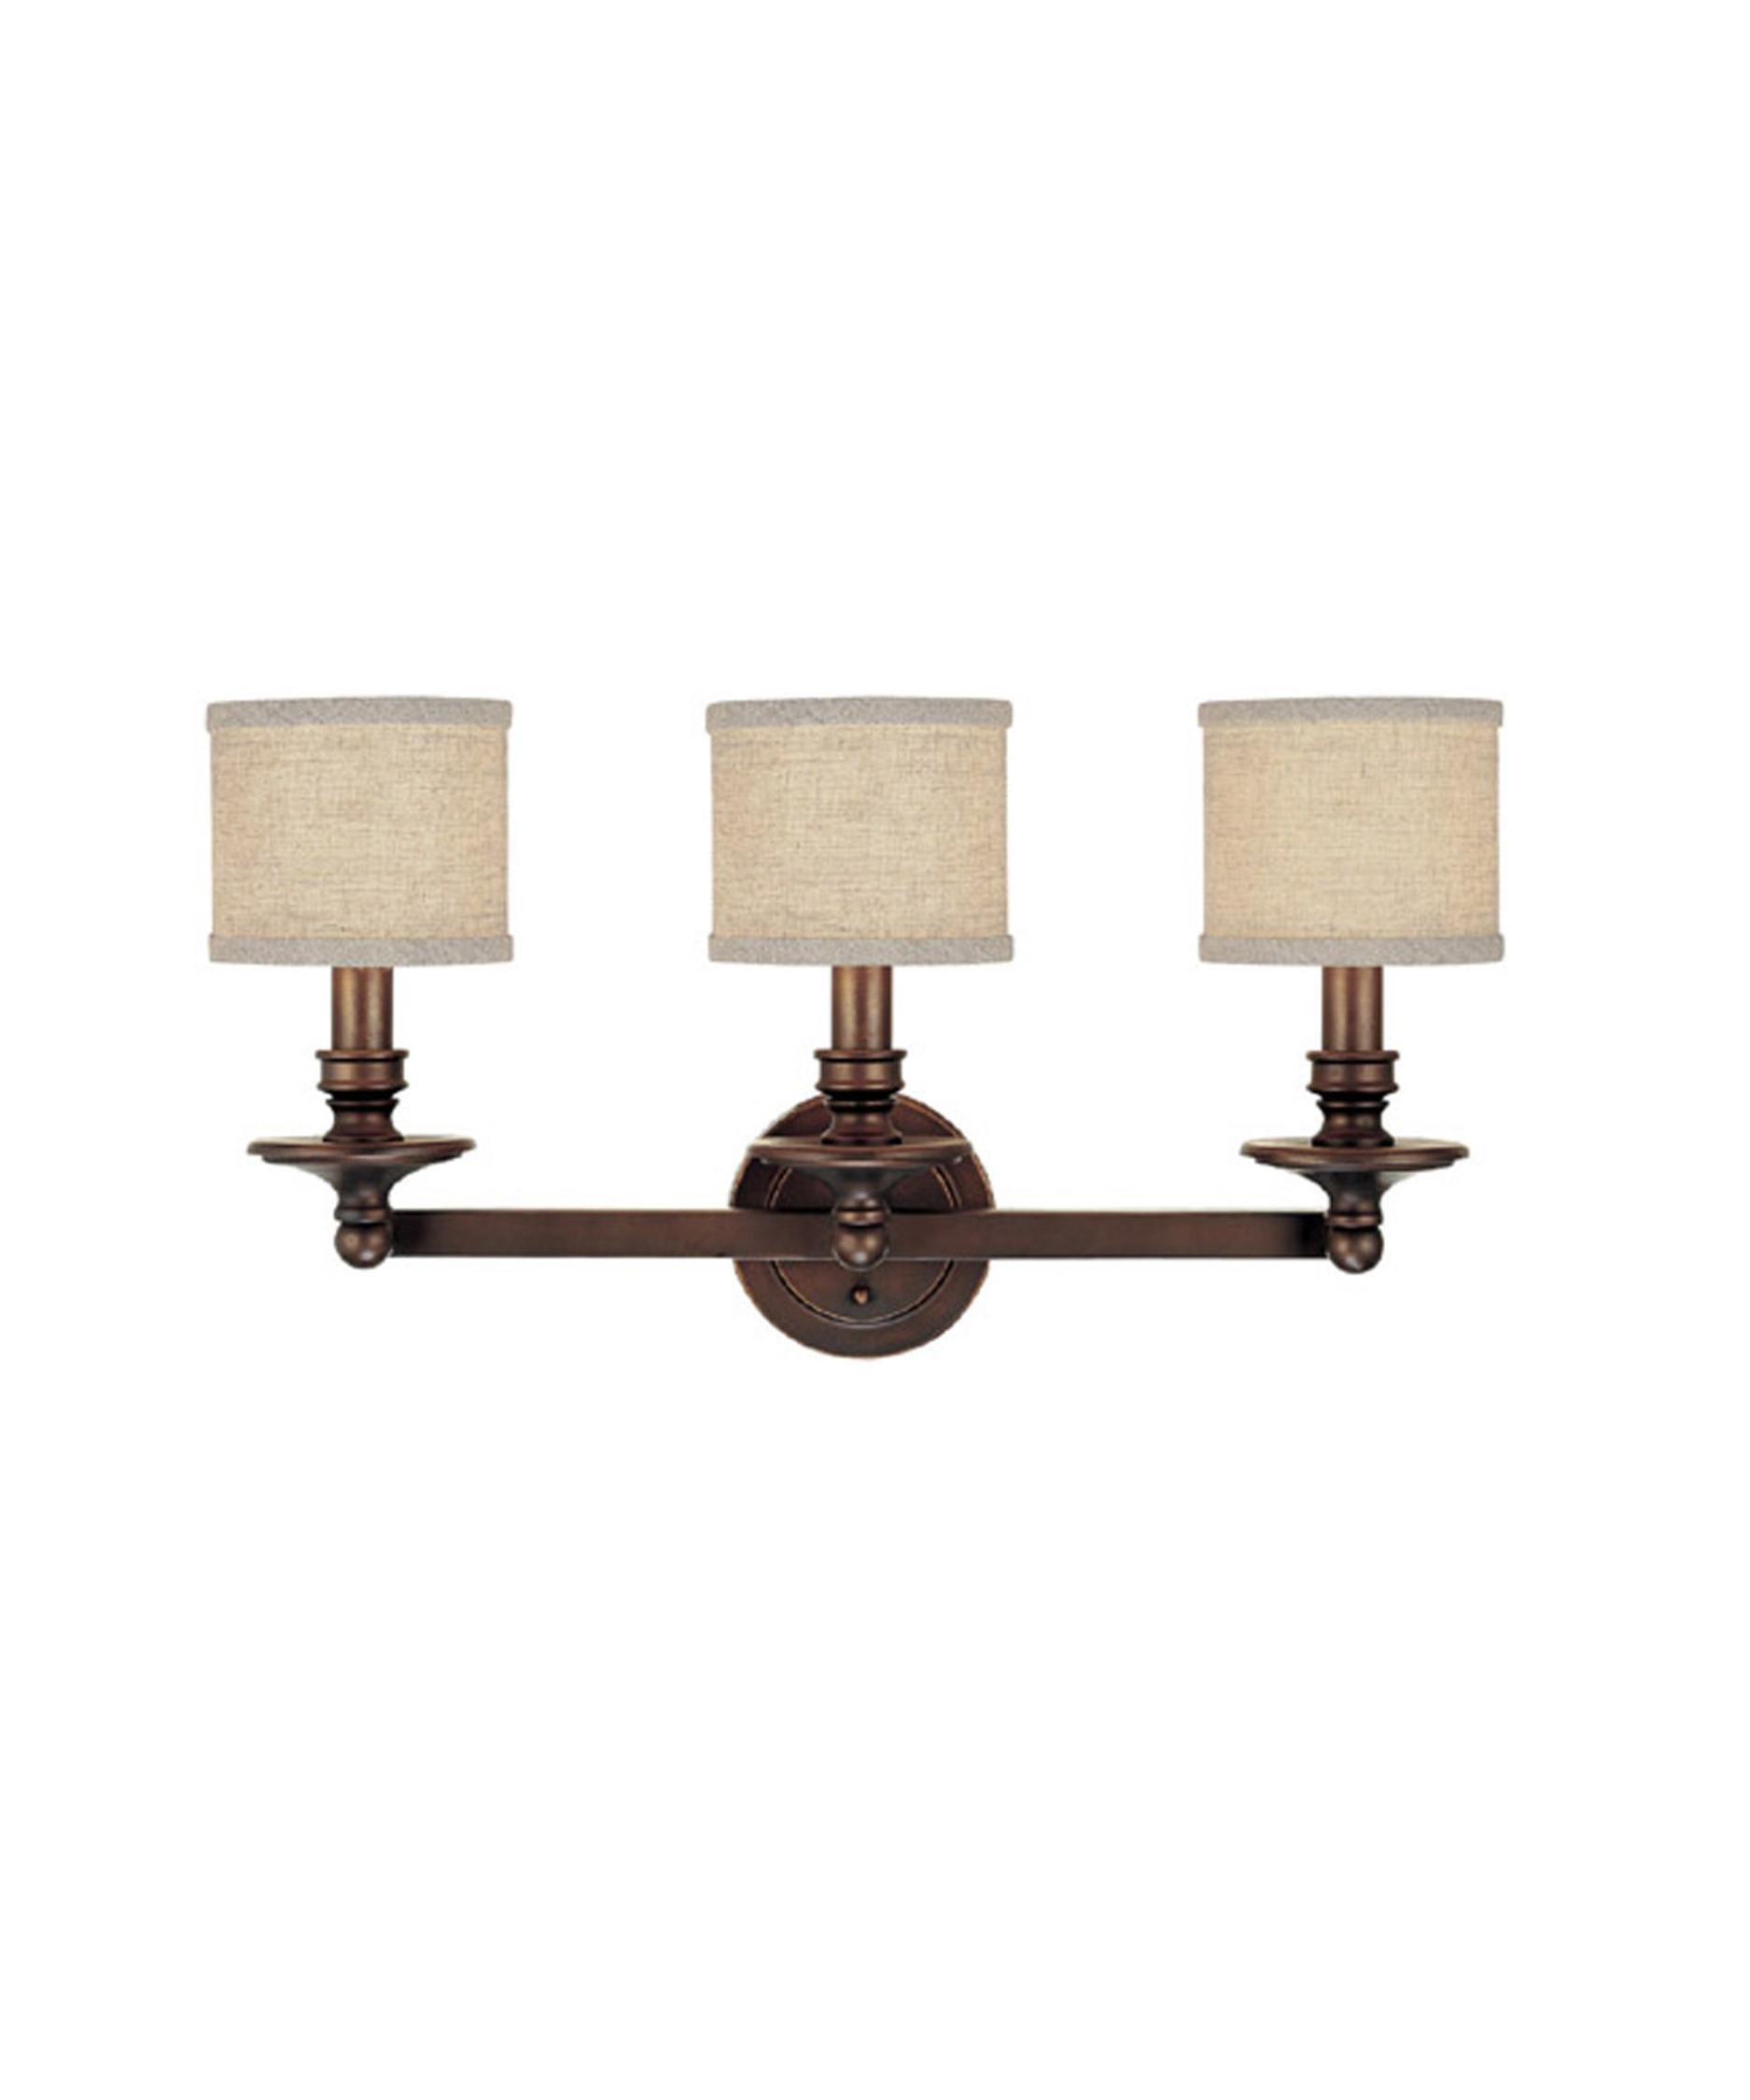 Bathroom Vanity Lights In Bronze capital lighting 1238 midtown 26 inch wide bath vanity light